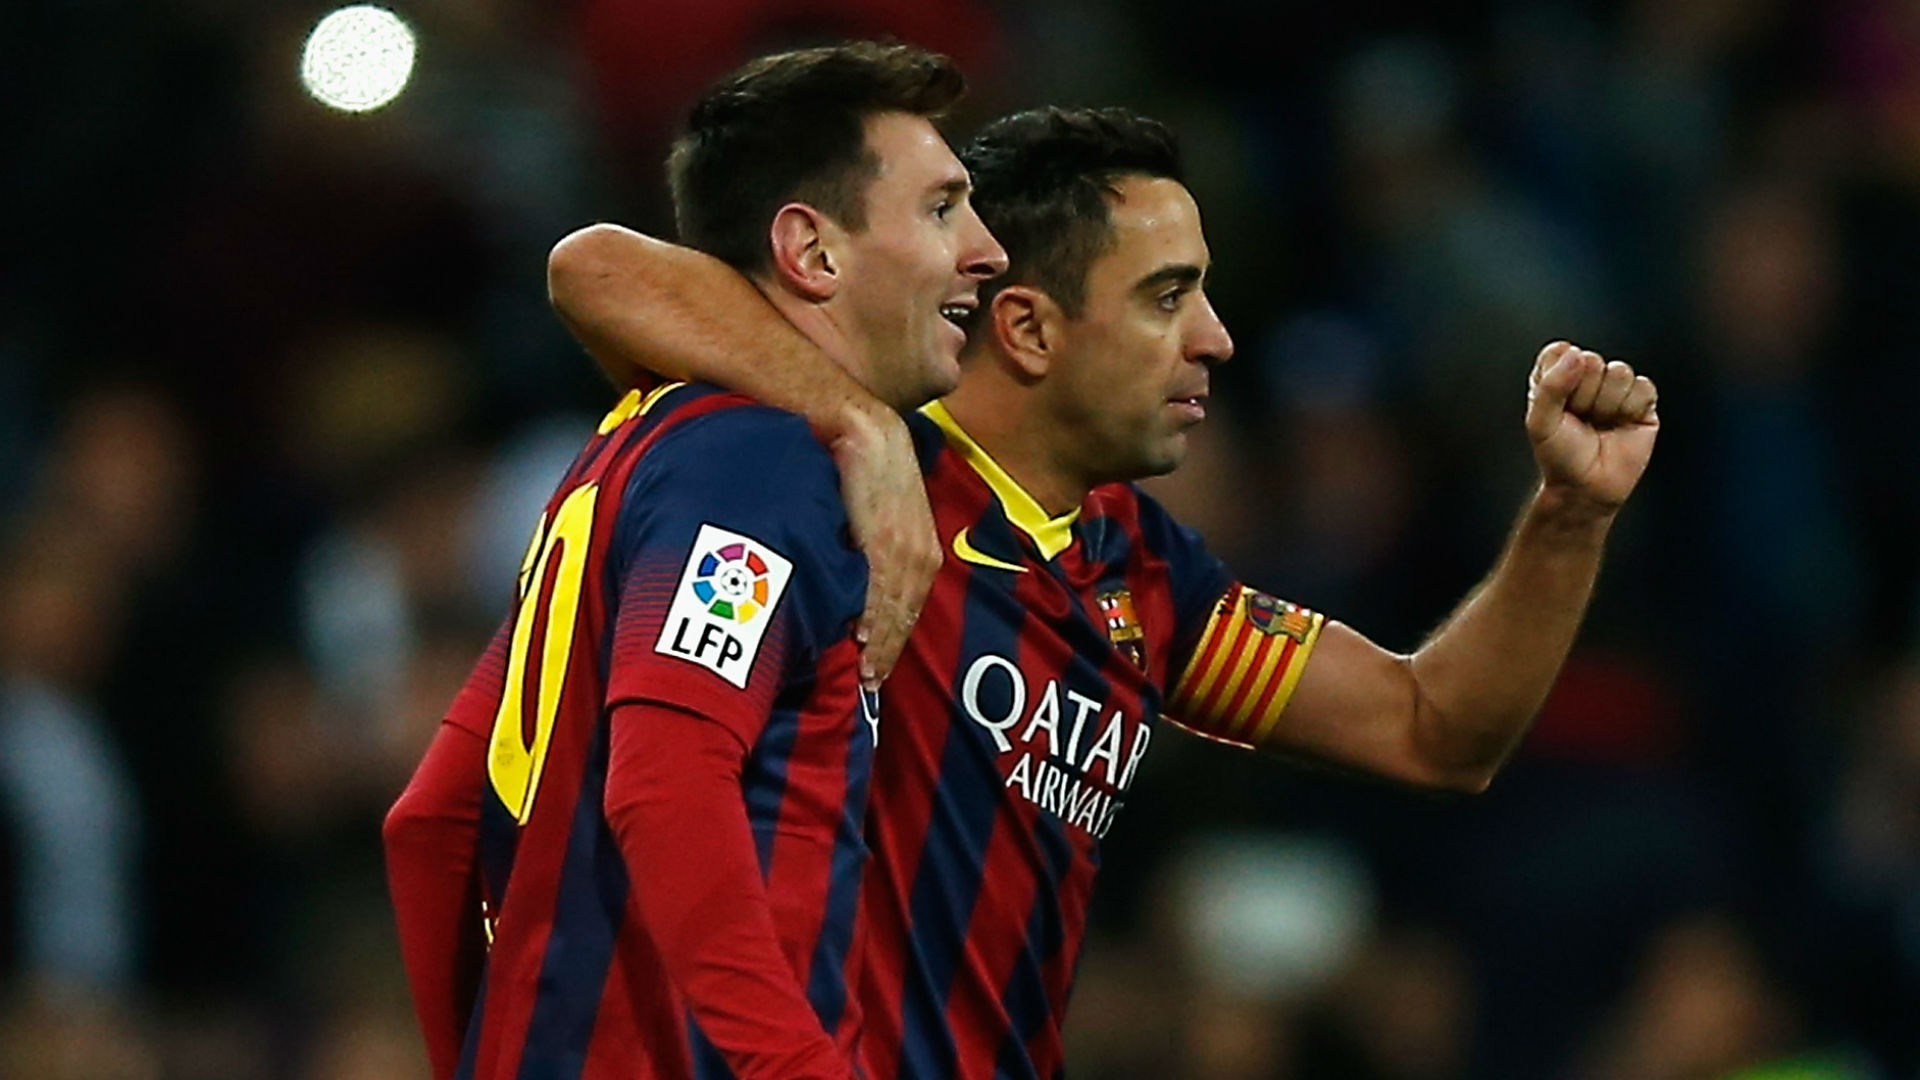 Xavi sure 'competitive beast' Messi will play 2022 World Cup, talks Barca ambitions